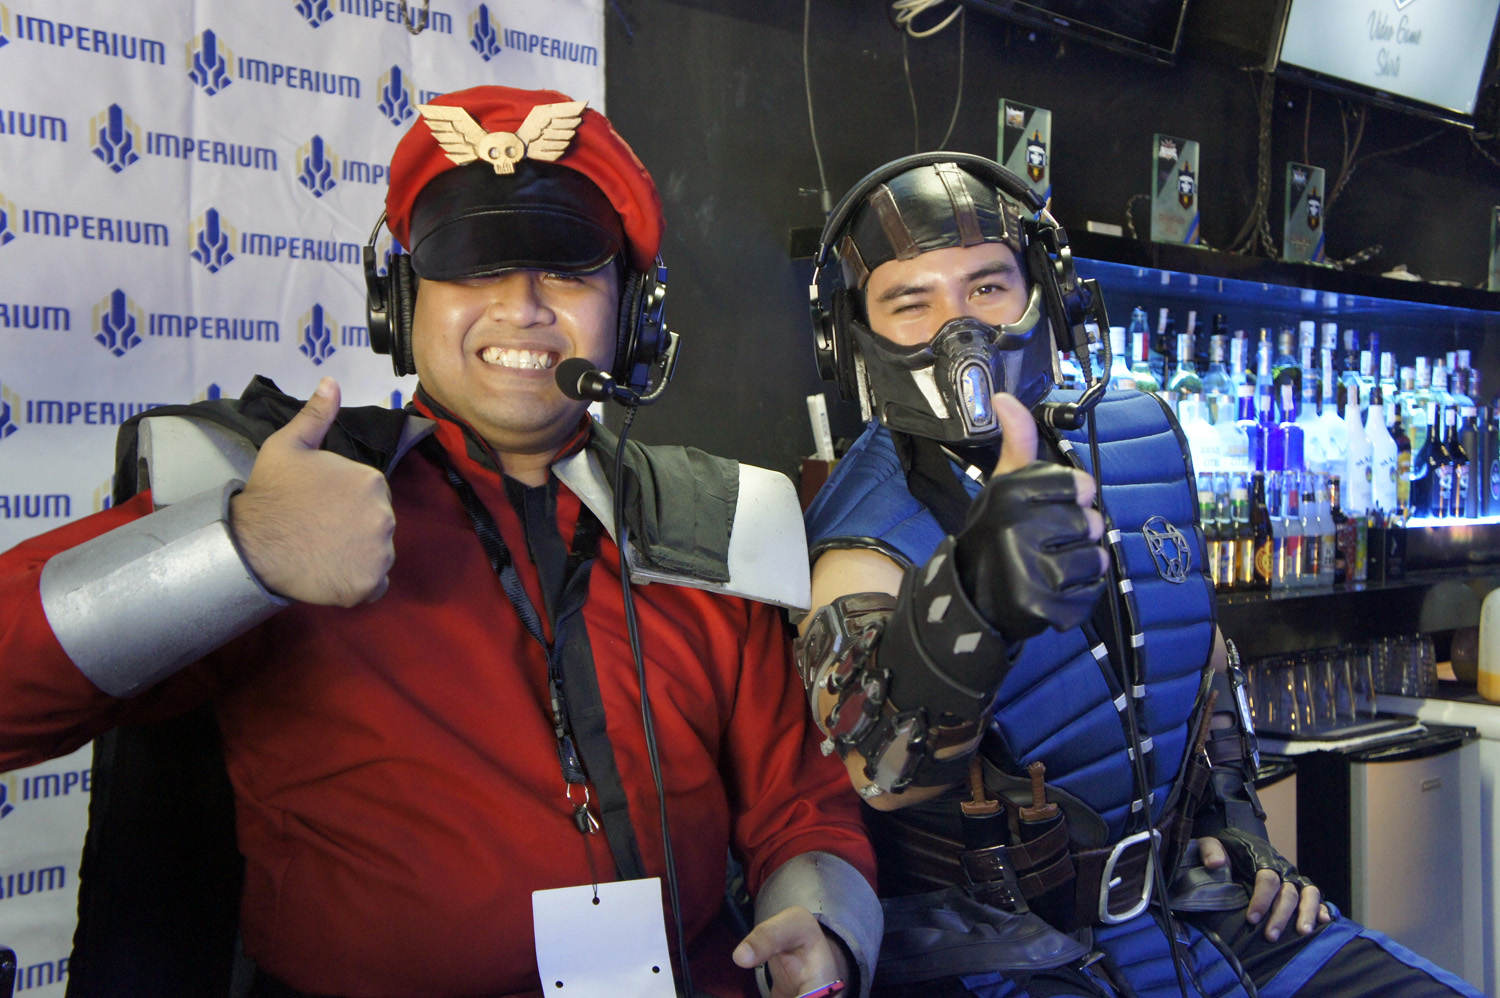 M. Bison and Sub-Zero taking their time from world domination plans to commentate some matches